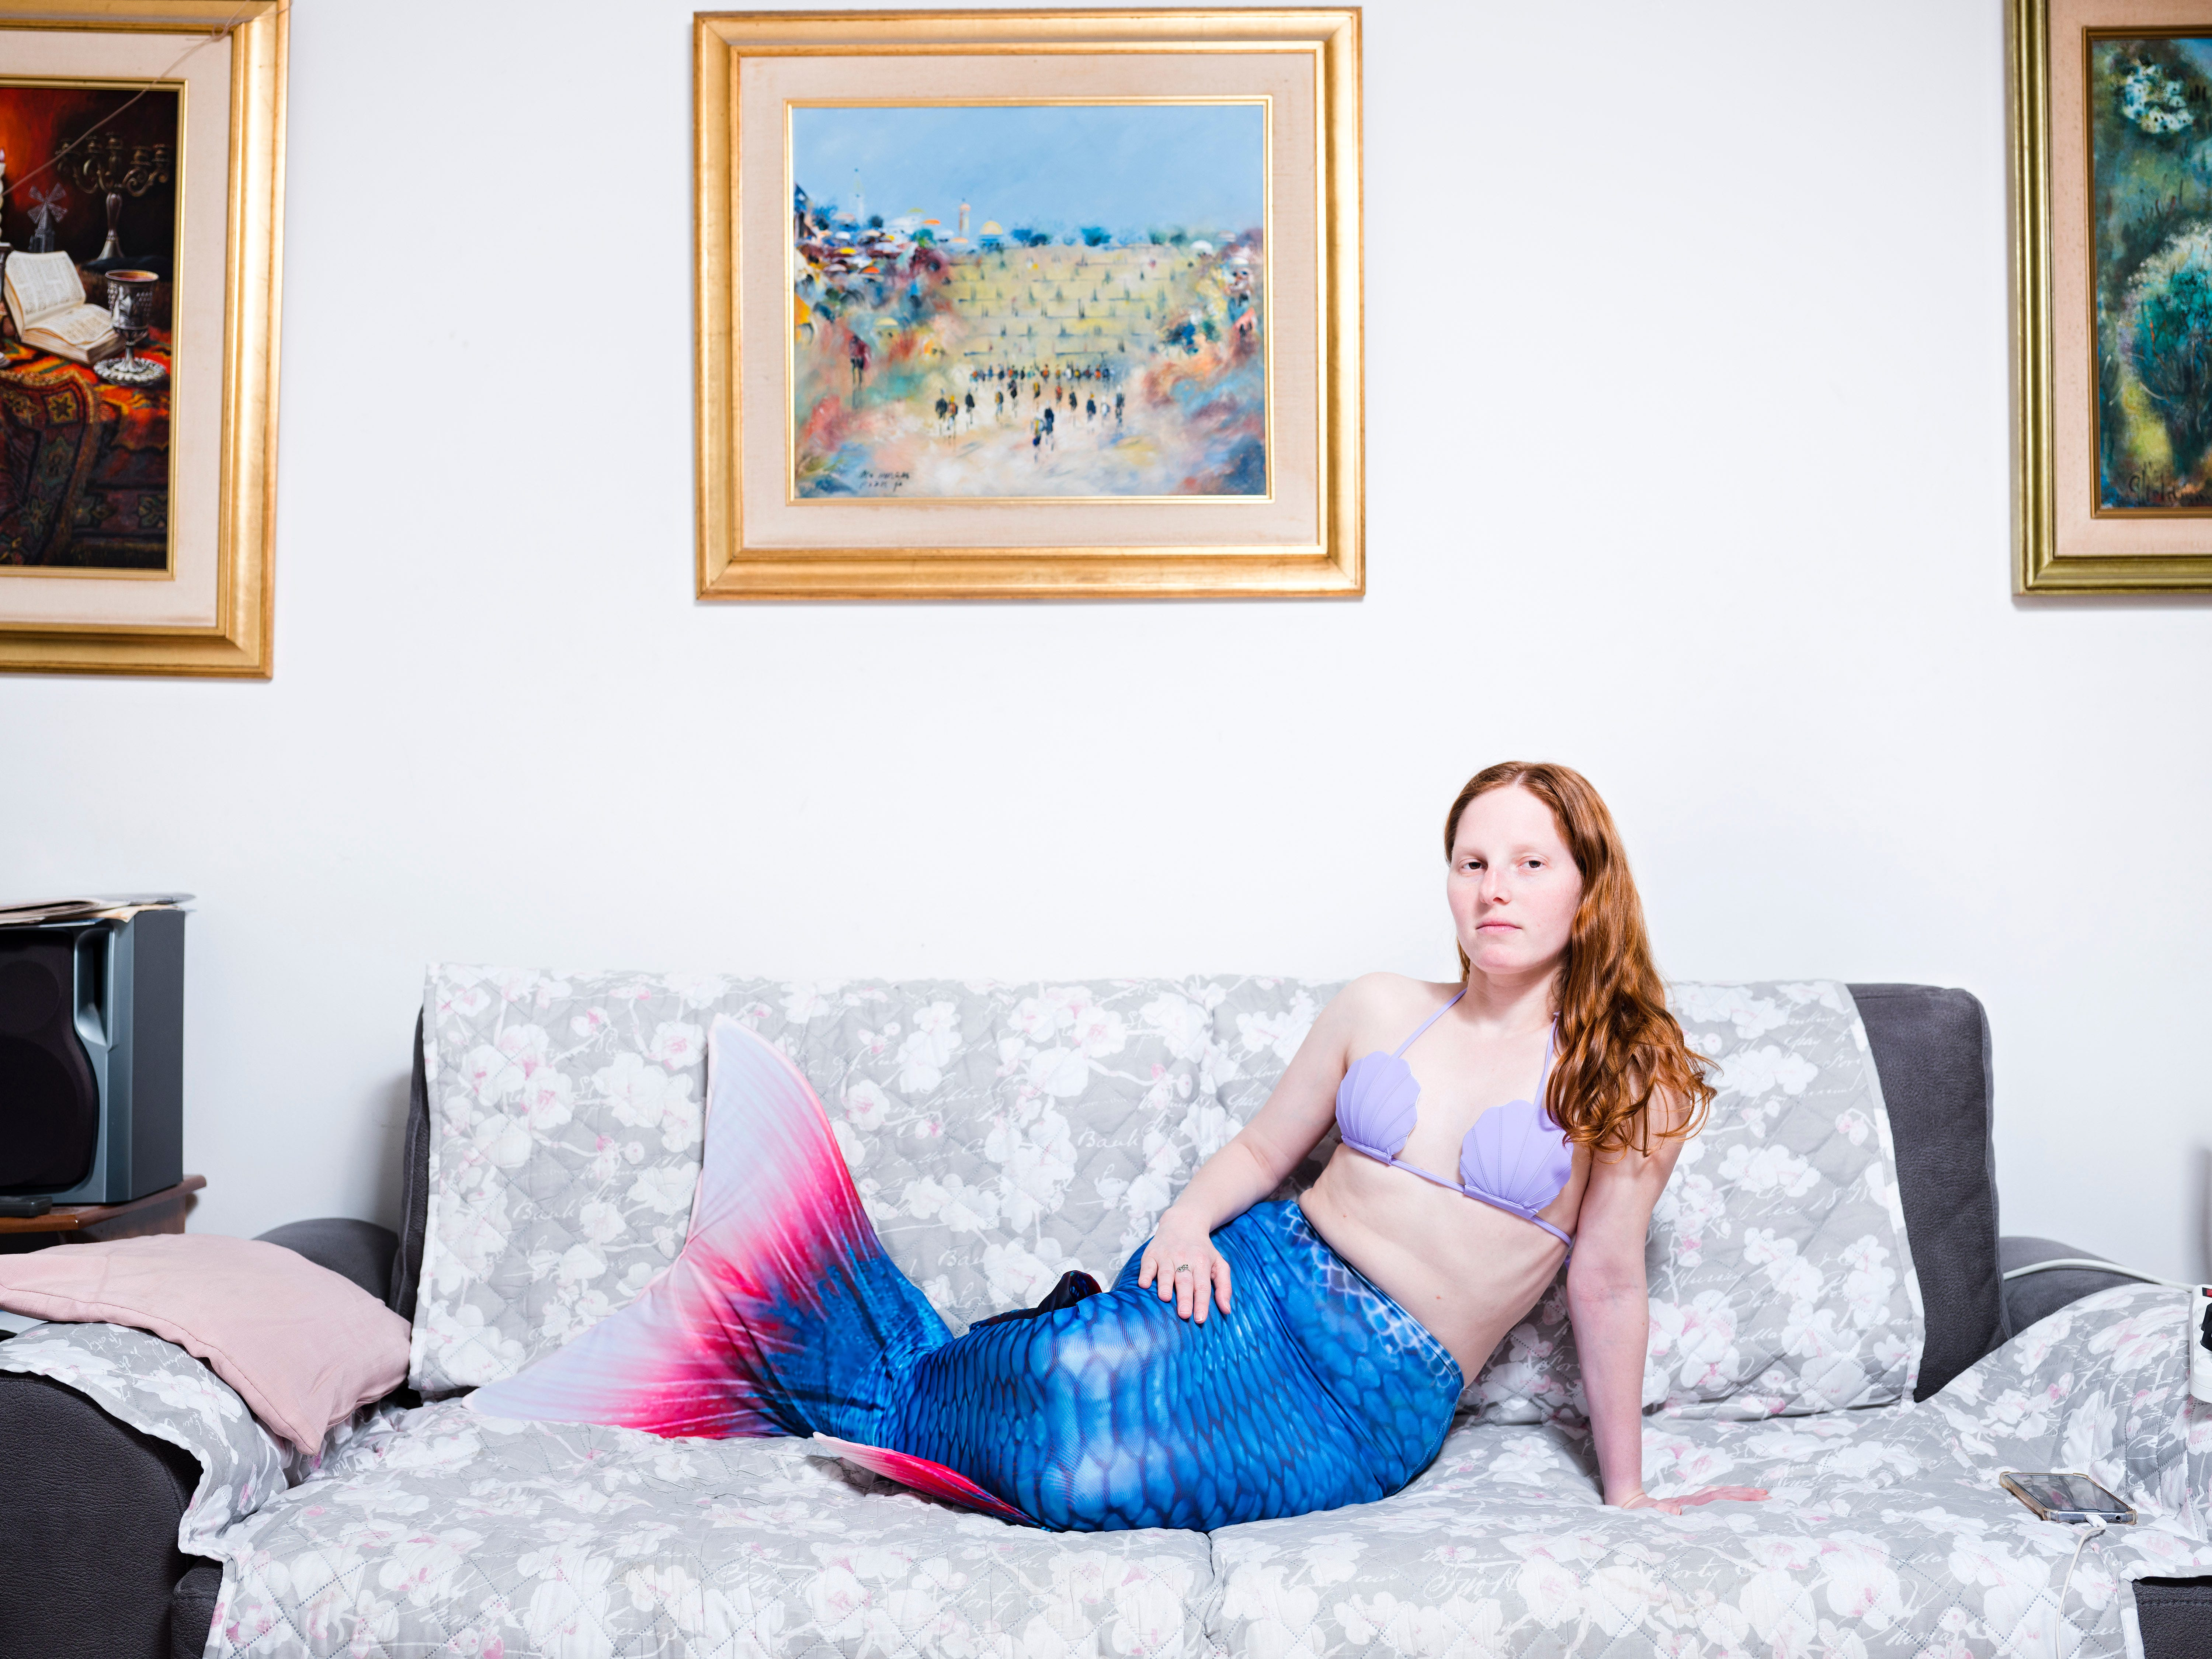 In this Tuesday, March. 26, 2019 photo, Vered Klein, a member of the Israeli Mermaid Community, poses for a portrait as she wears a mermaid tail at her home in Ramat Gan, Israel.